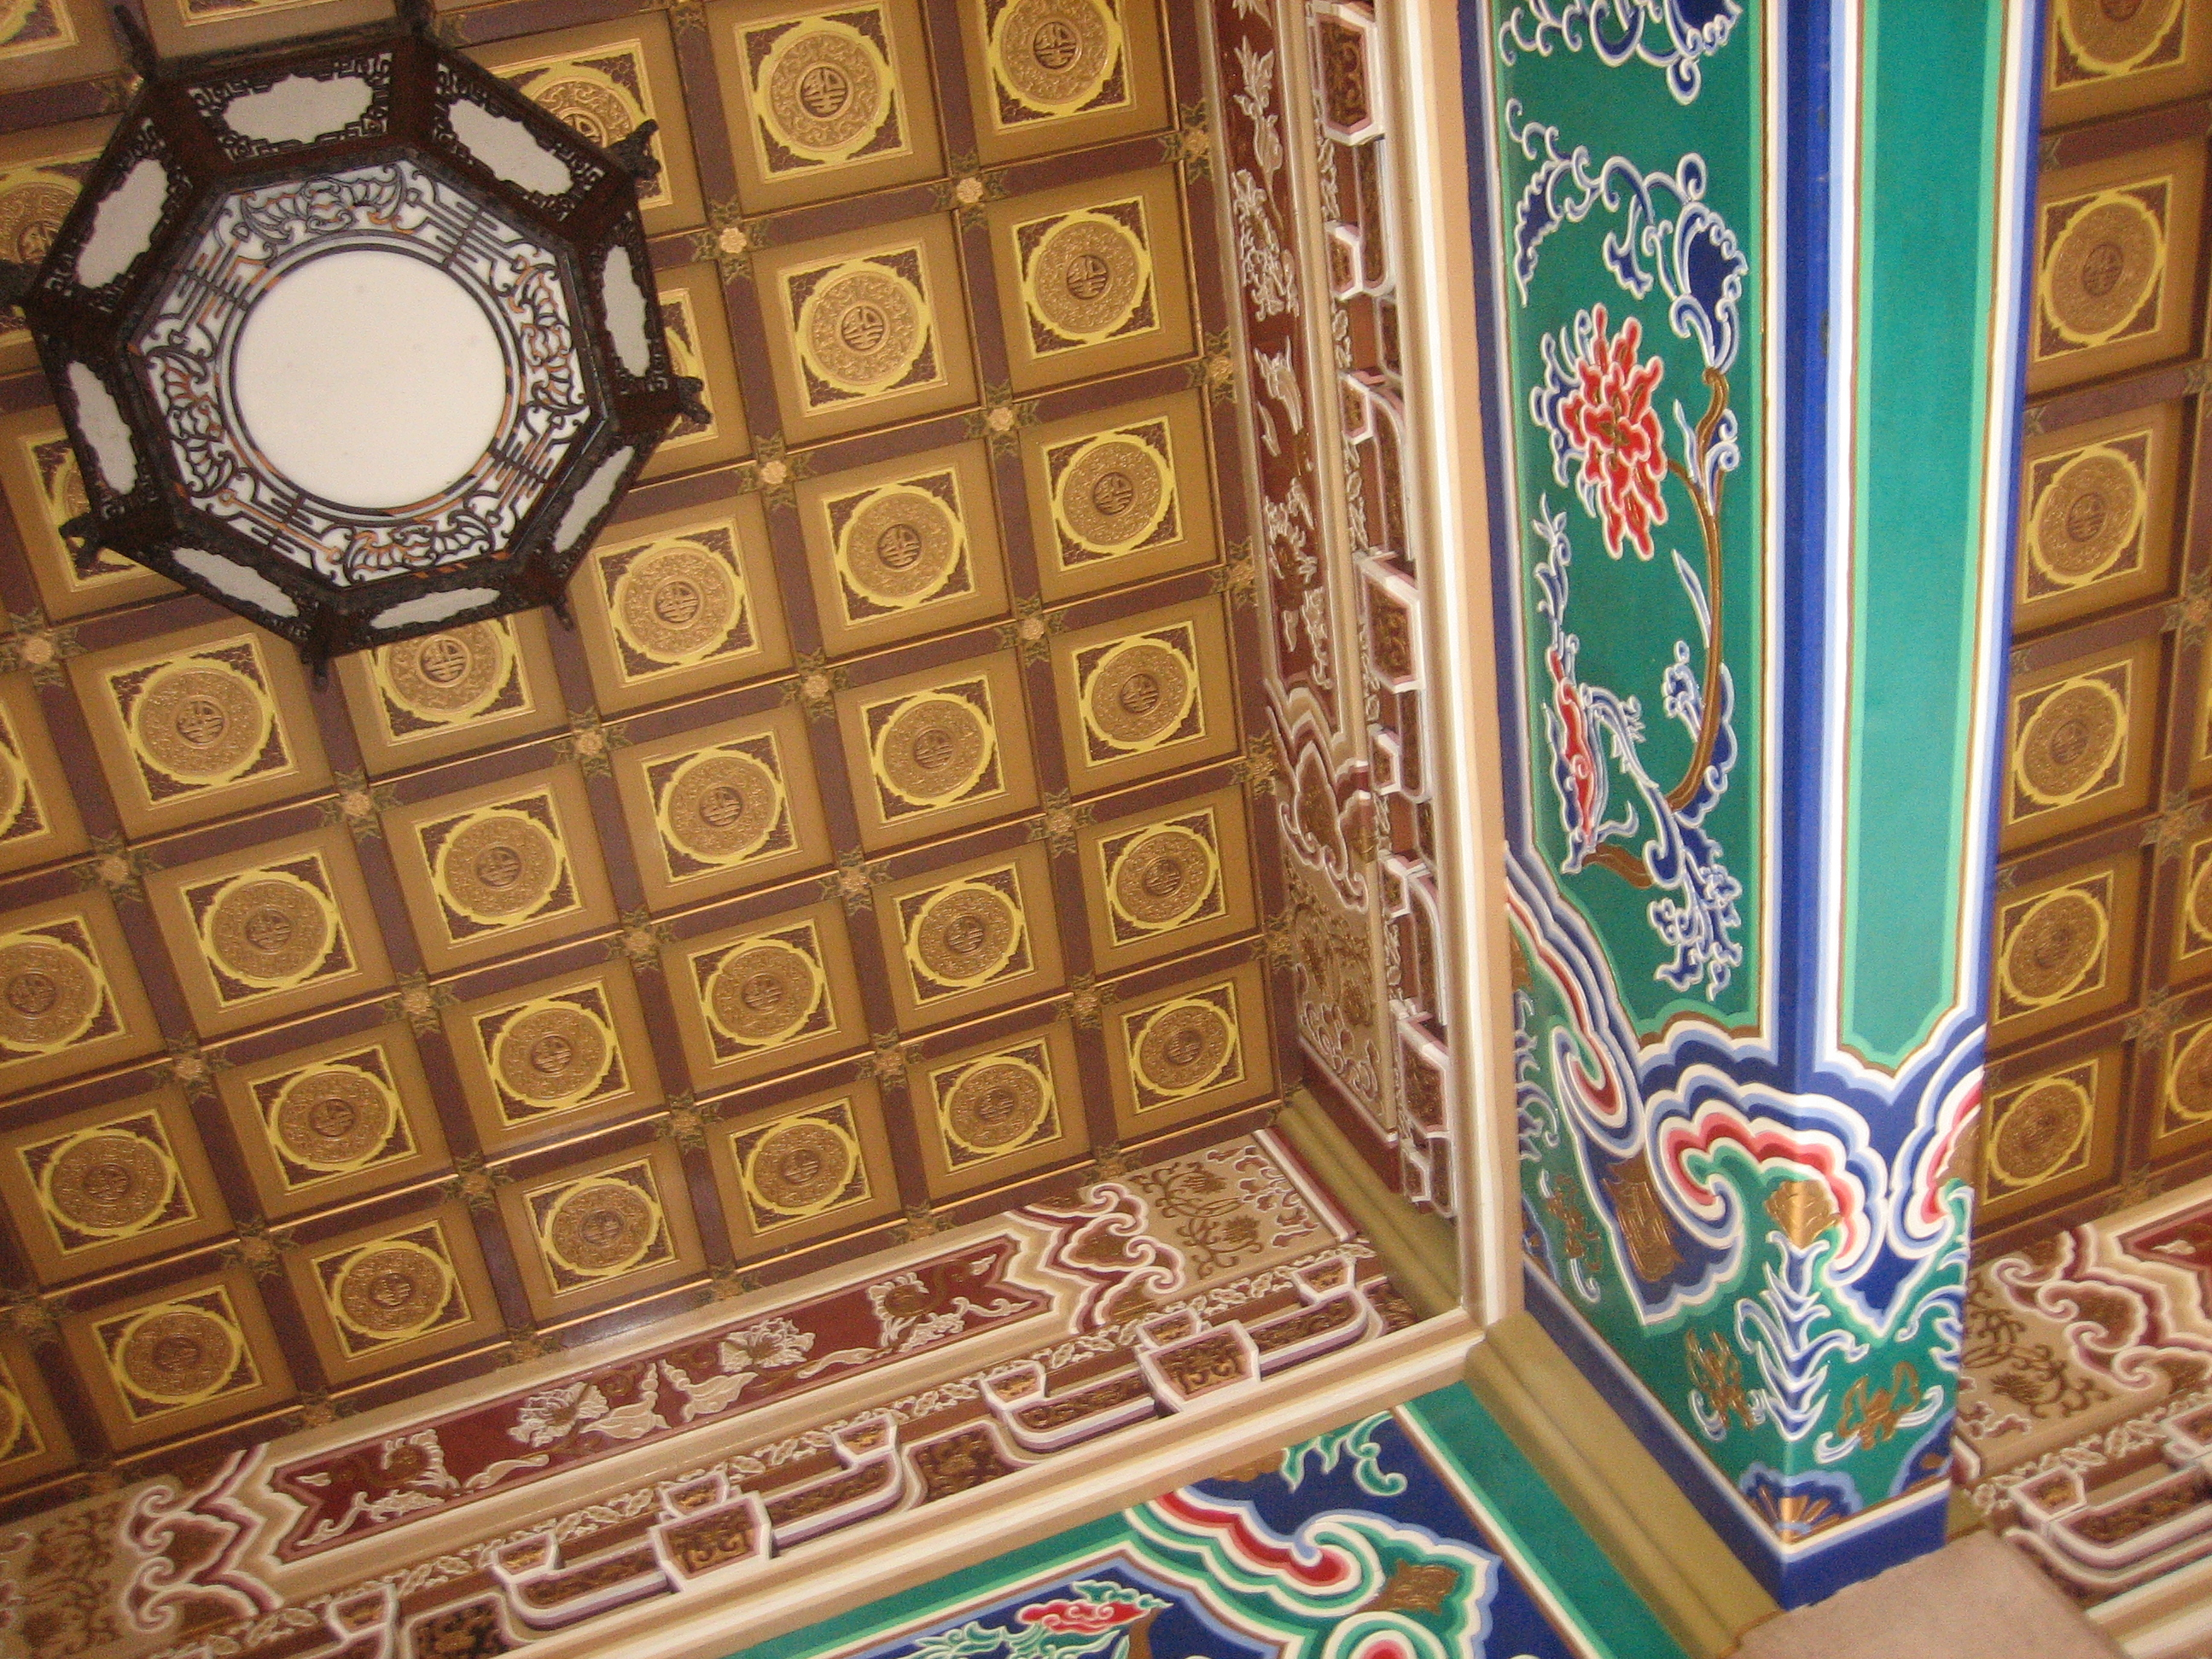 Roof of temple of Confucius in Taichung